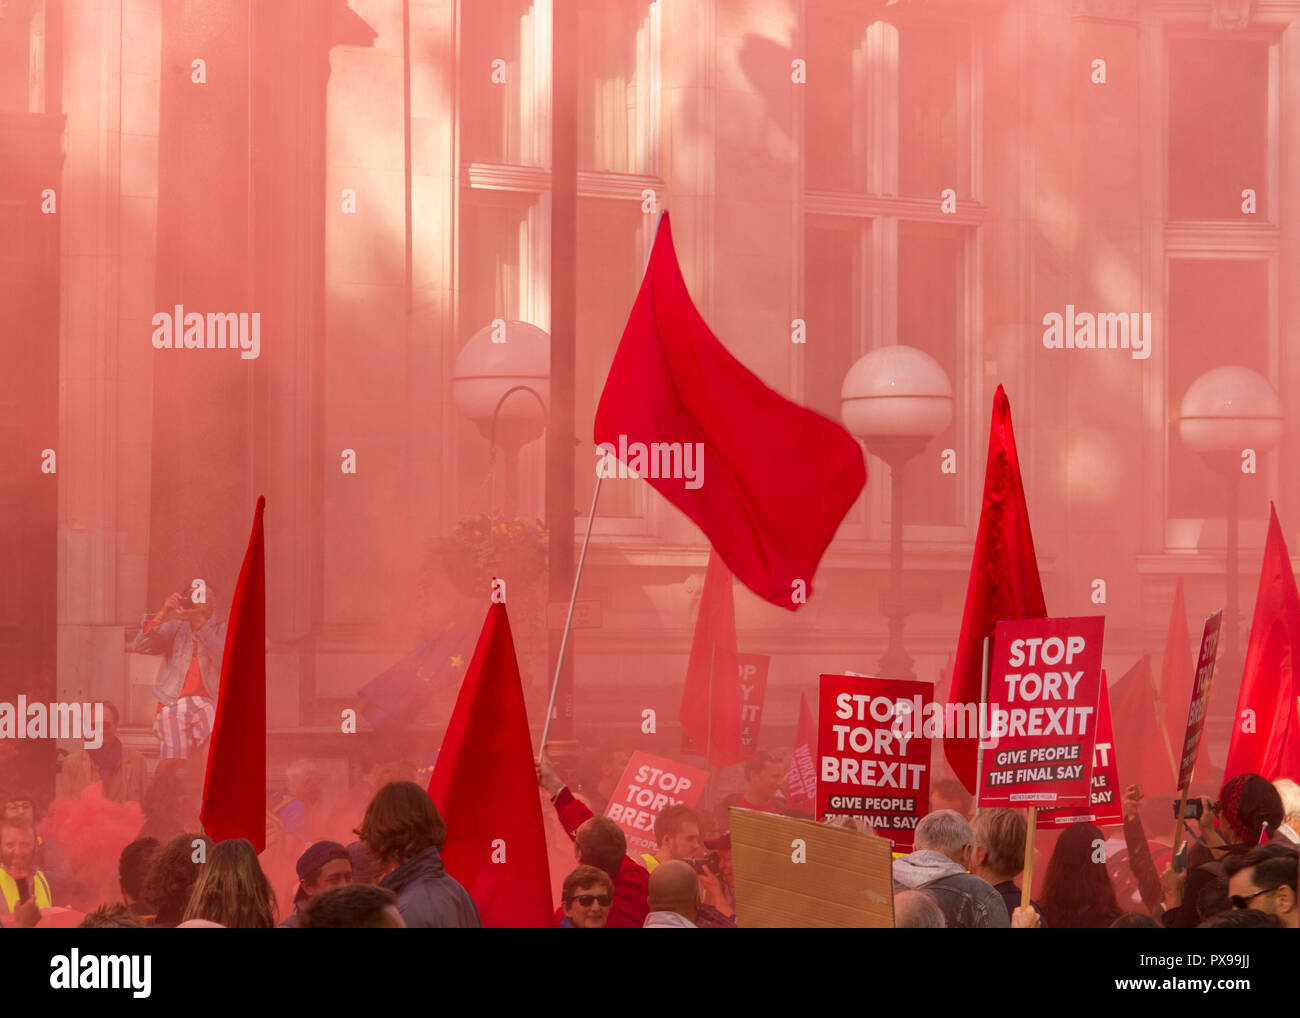 """UK. 20th Oct, 2018. Red flags and placards saying """"Stop Tory Brexit"""" are waved against a backdrop of red smoke from flares let off during the People's Vote March against Brexit on 20th October 2018. Organisers claim over 500,000 participants took part in the event. They were campaigning for a referendum of the final terms of the United Kingdom's withdrawal from the European Union Credit: Stephen Taylor/Alamy Live News Stock Photo"""